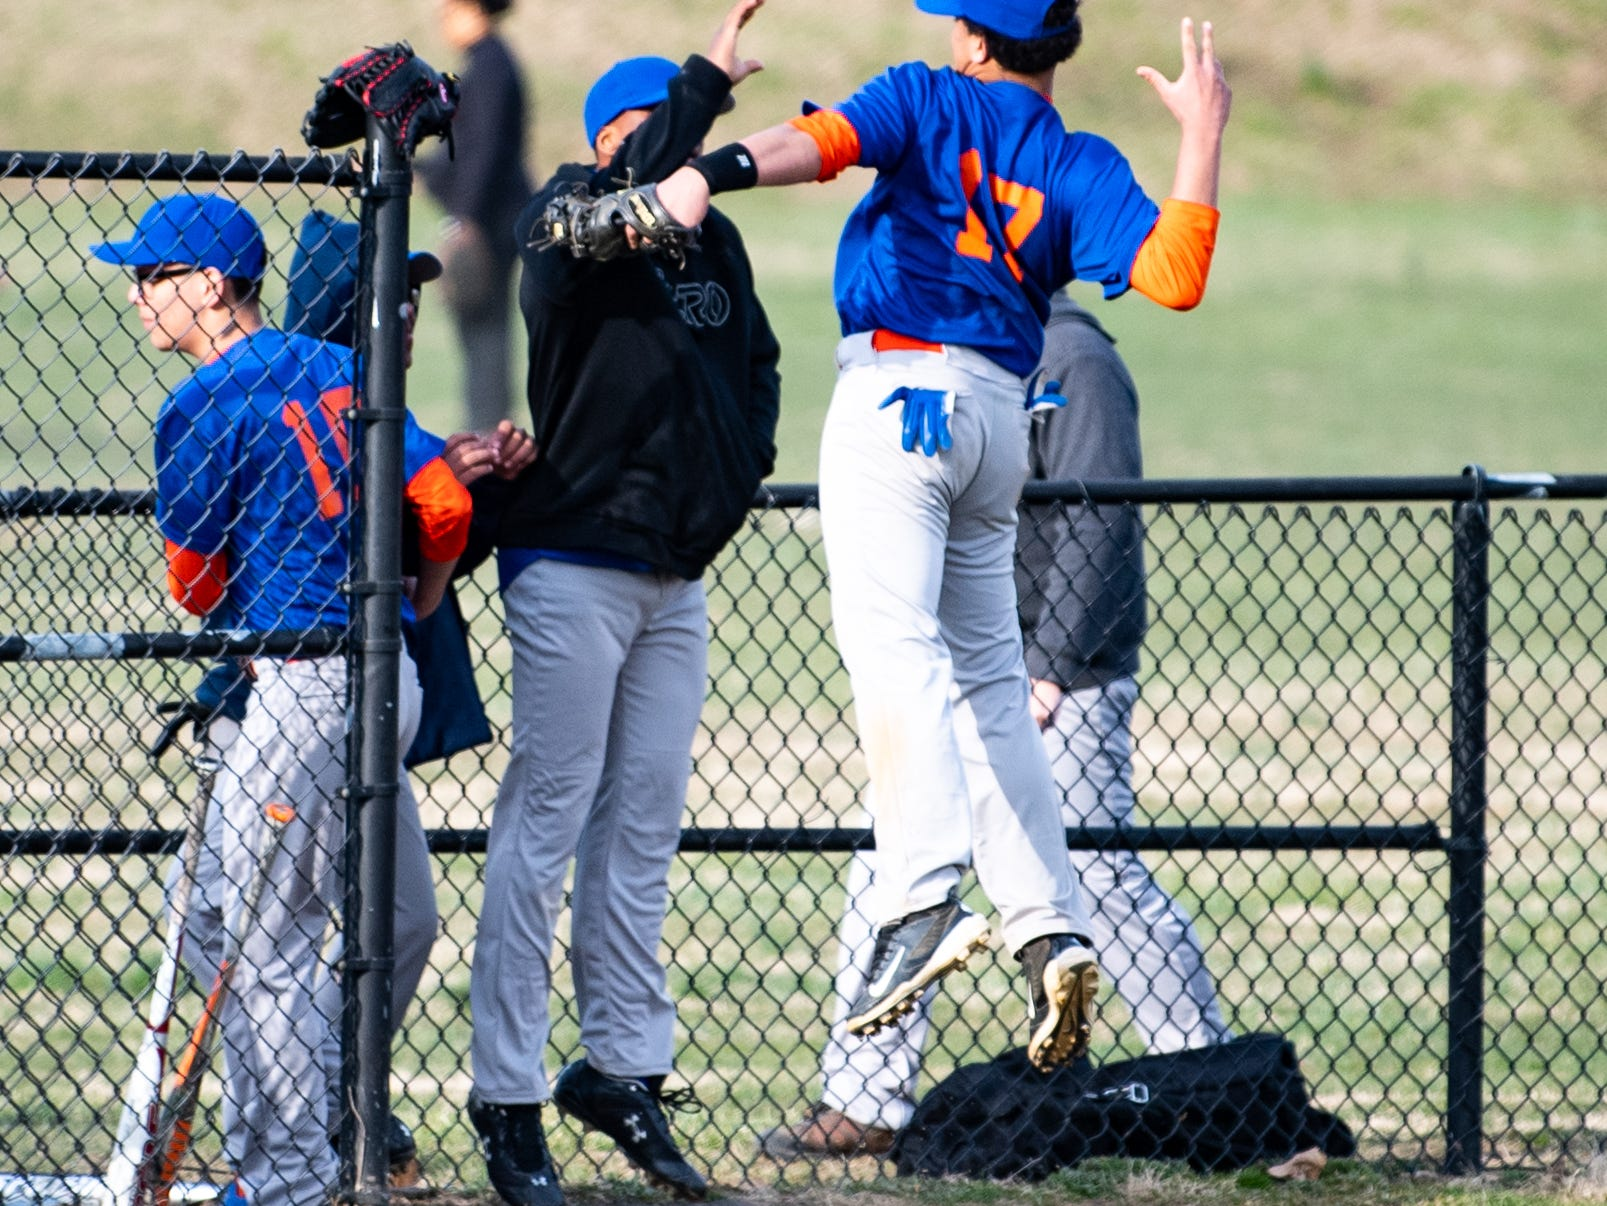 York High celebrates after completing a double play to end the inning during their scrimmage against Steel High, March 20, 2019 at Small Athletic Field.